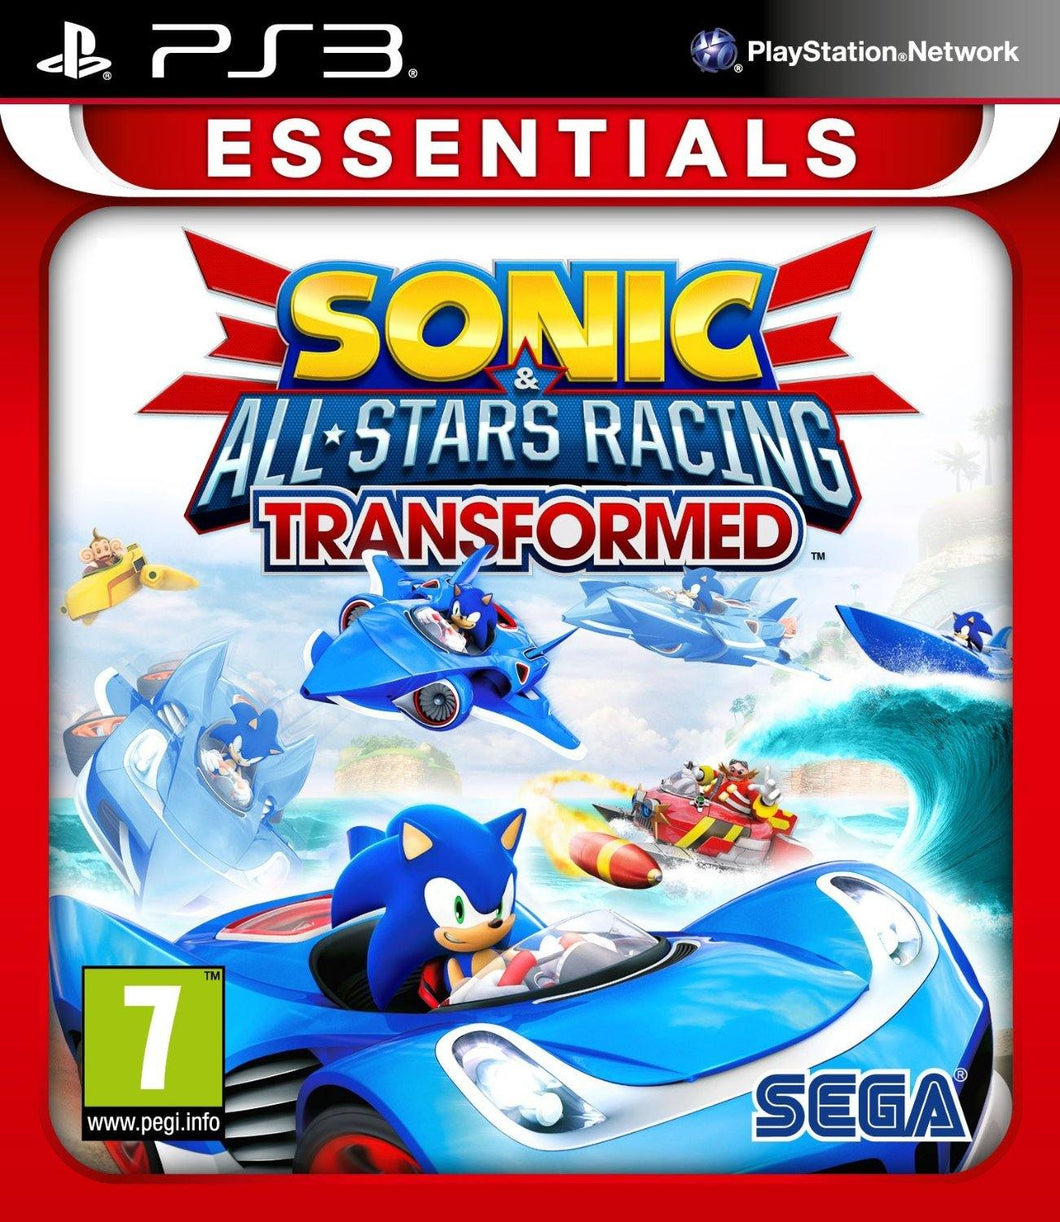 Sonic and All Stars Racing Transformed Essentials PS3